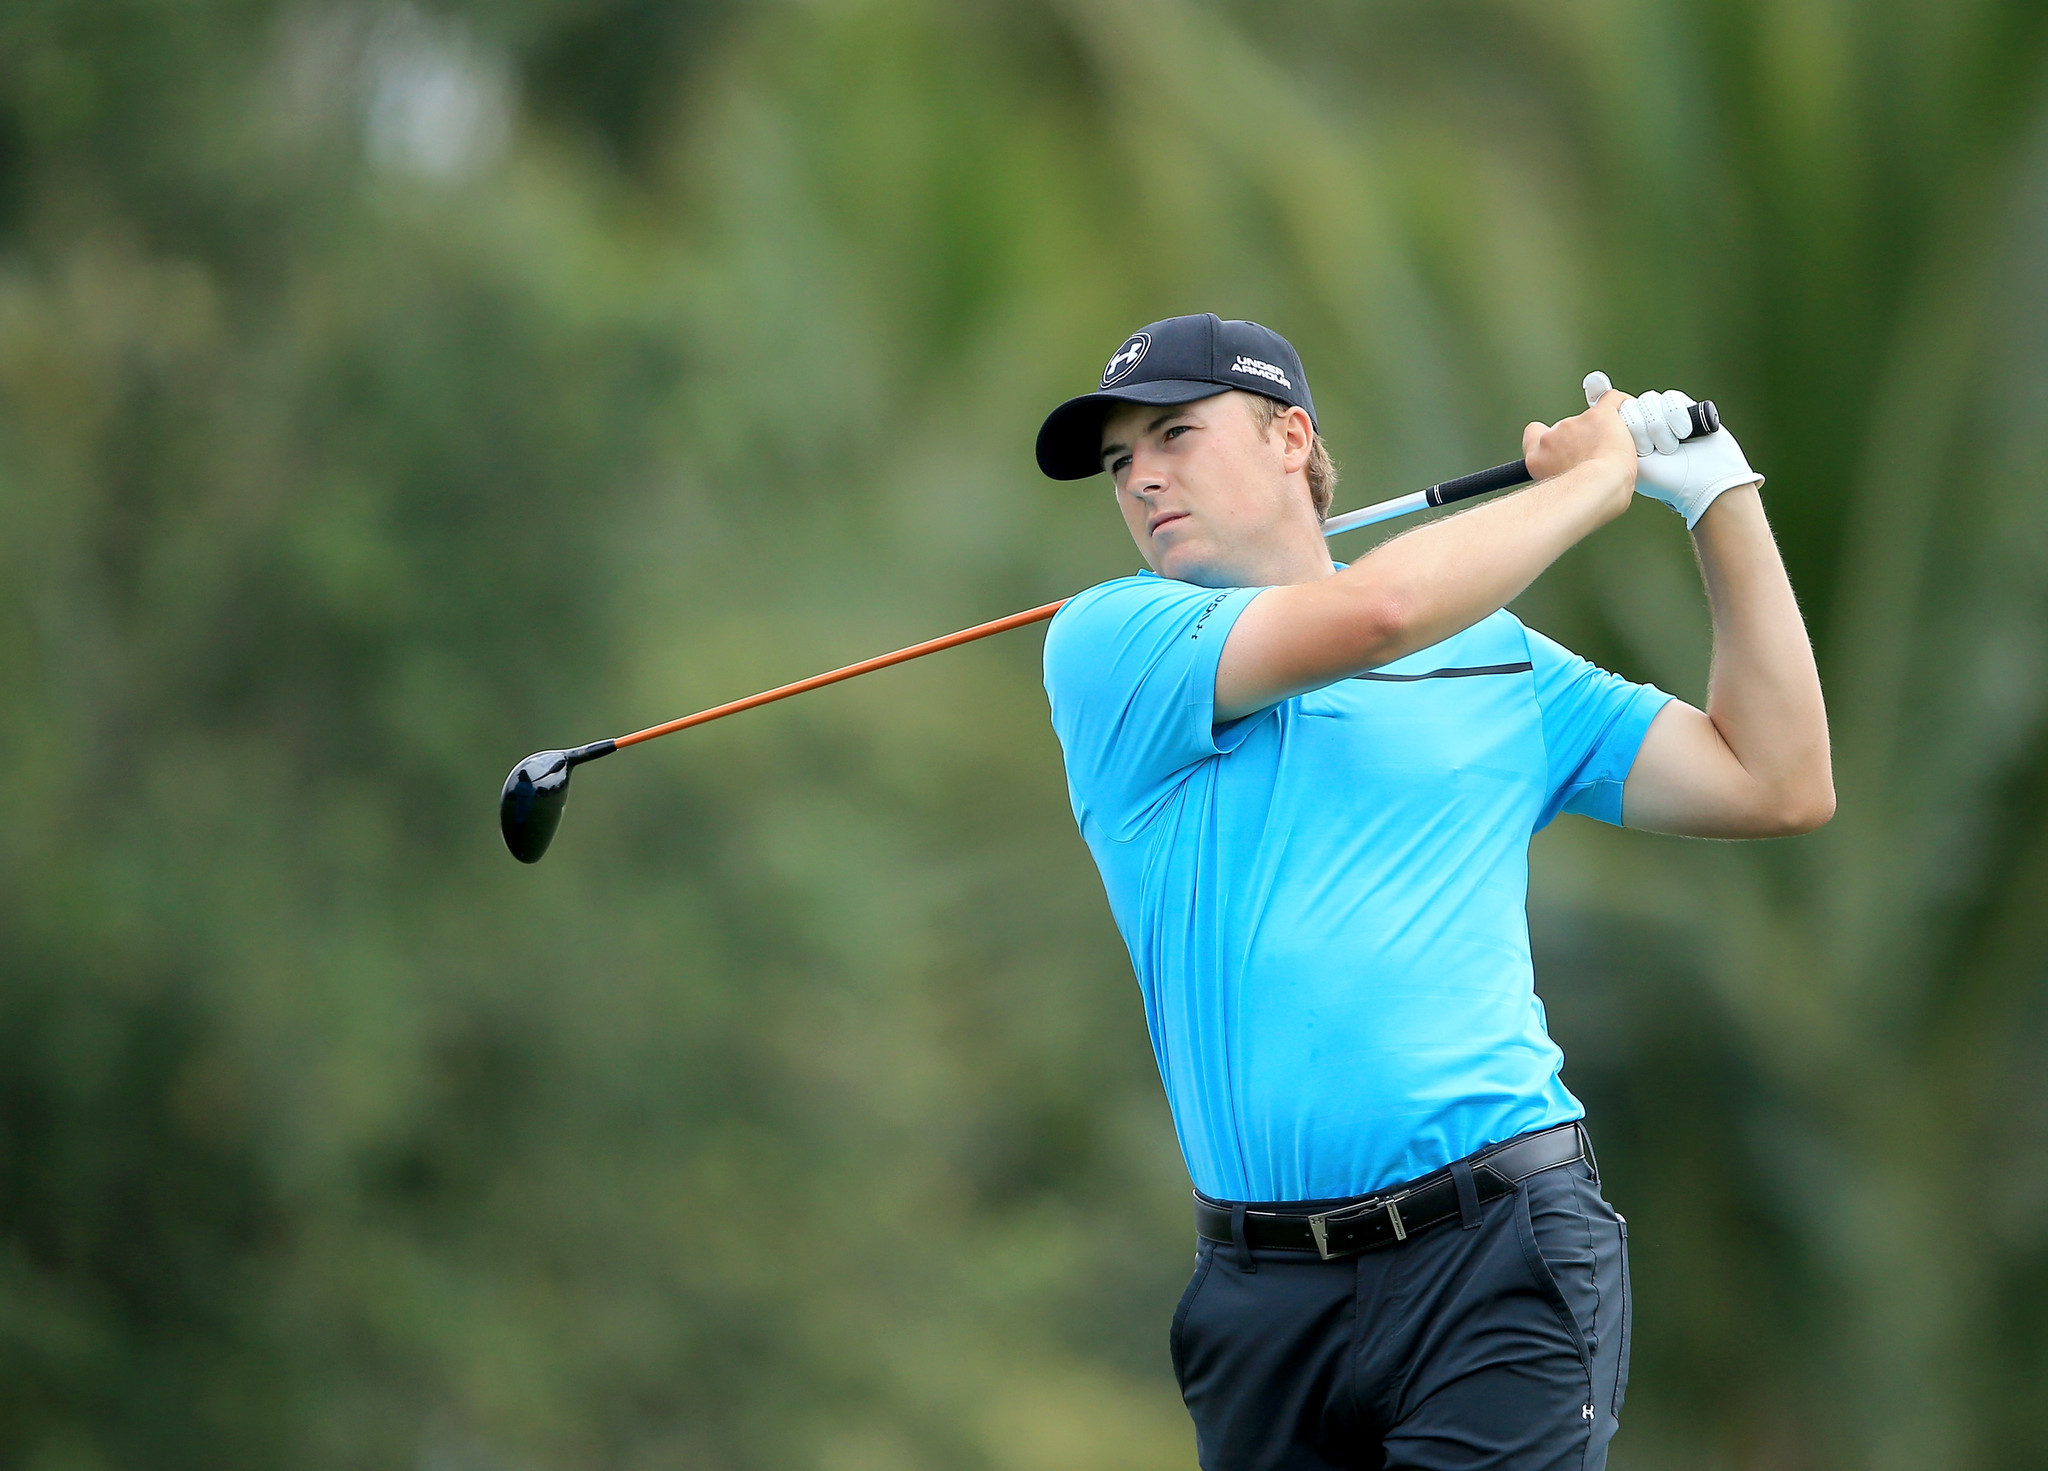 Jordan Spieth Leads Young Group Of Golfers On Pga Tour